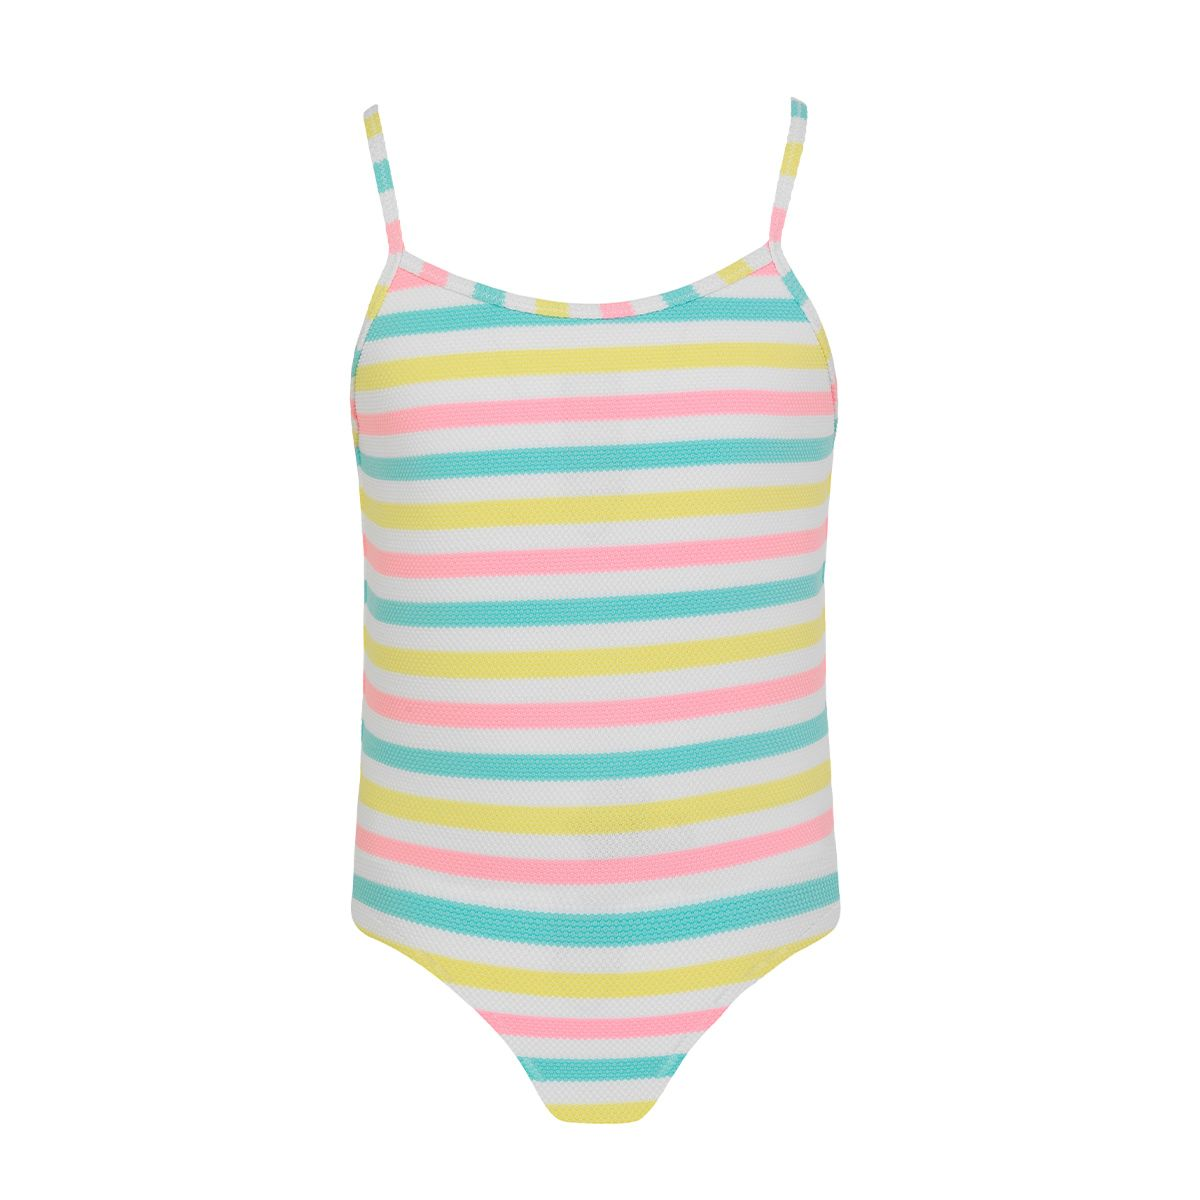 Sunuva Girls Multistripe cross back badpak